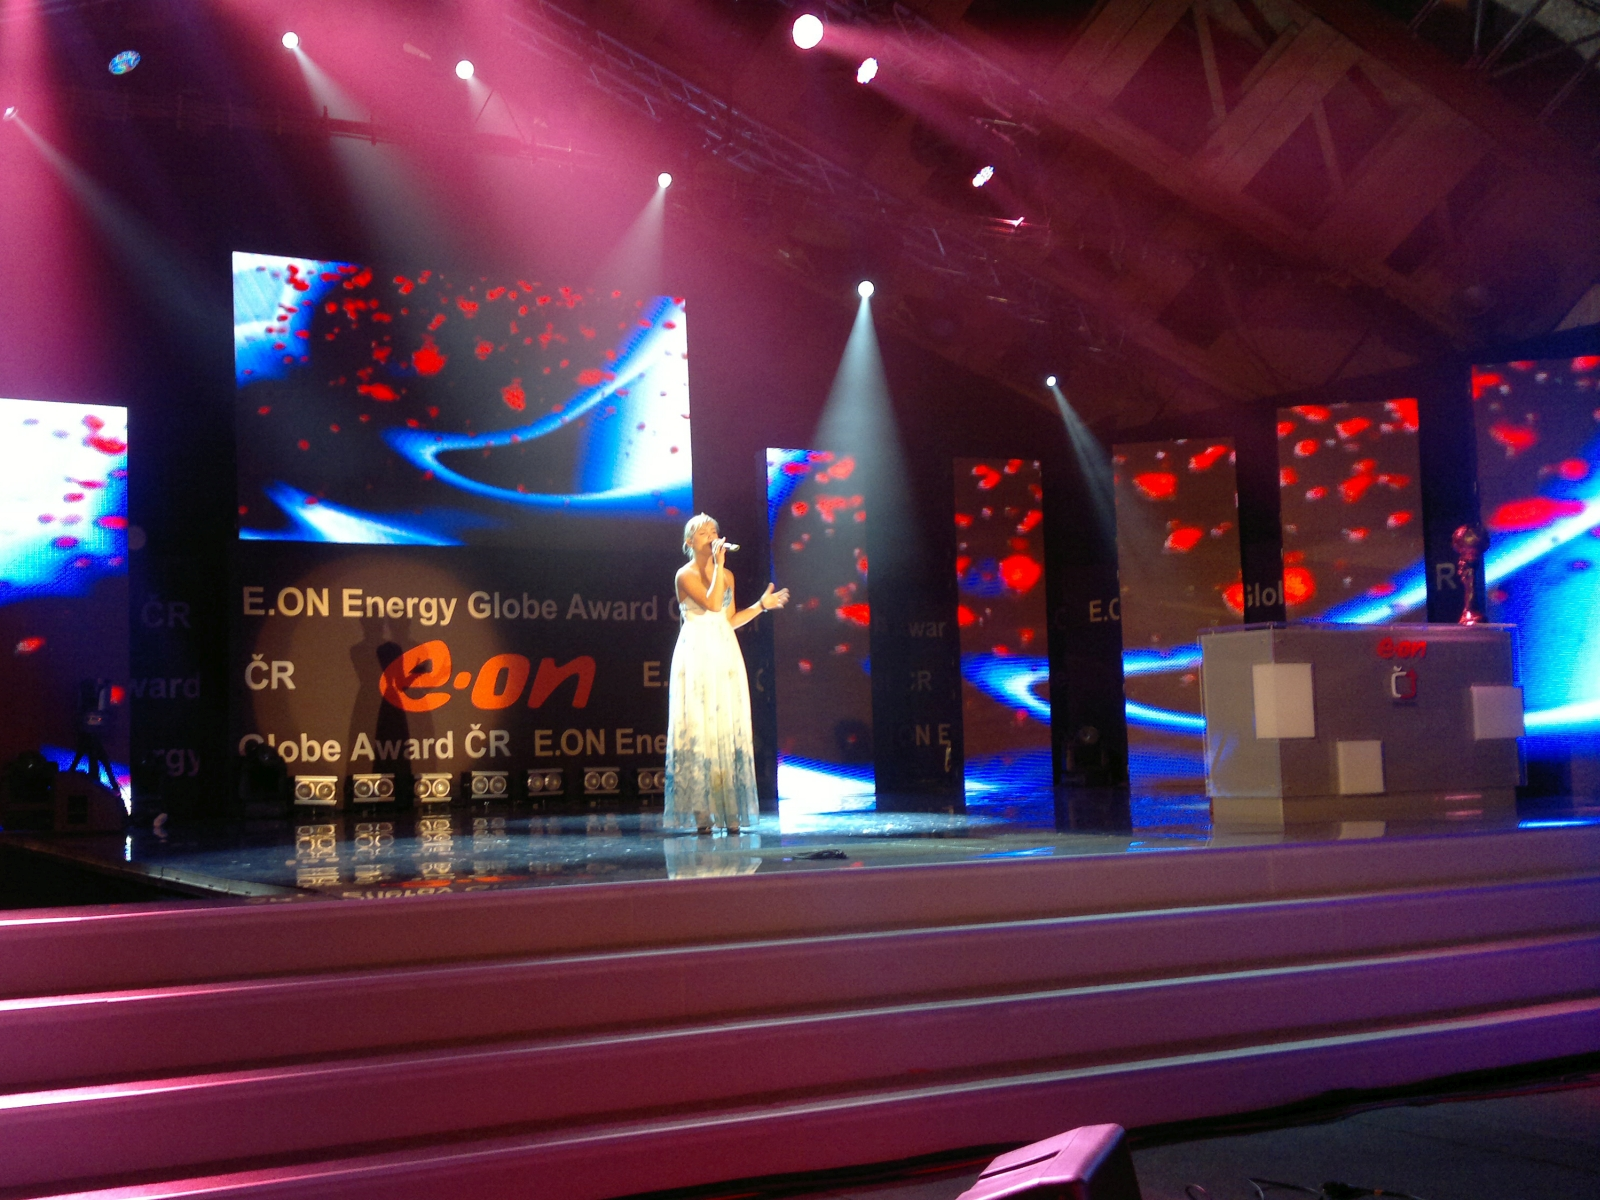 E.ON Energy Globe Award ČR 2011